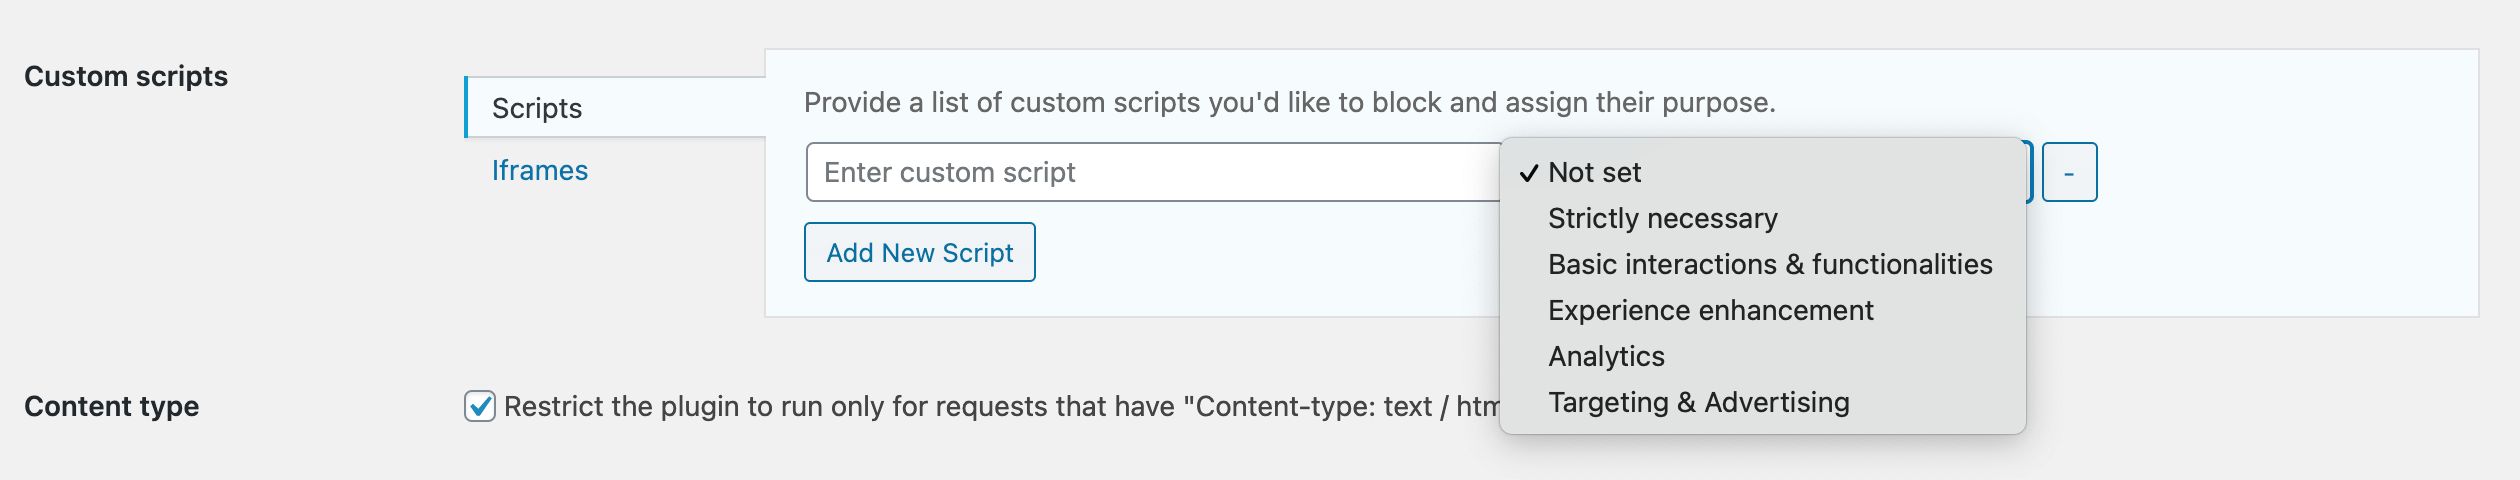 Wordpress custom and iframe scripts fields